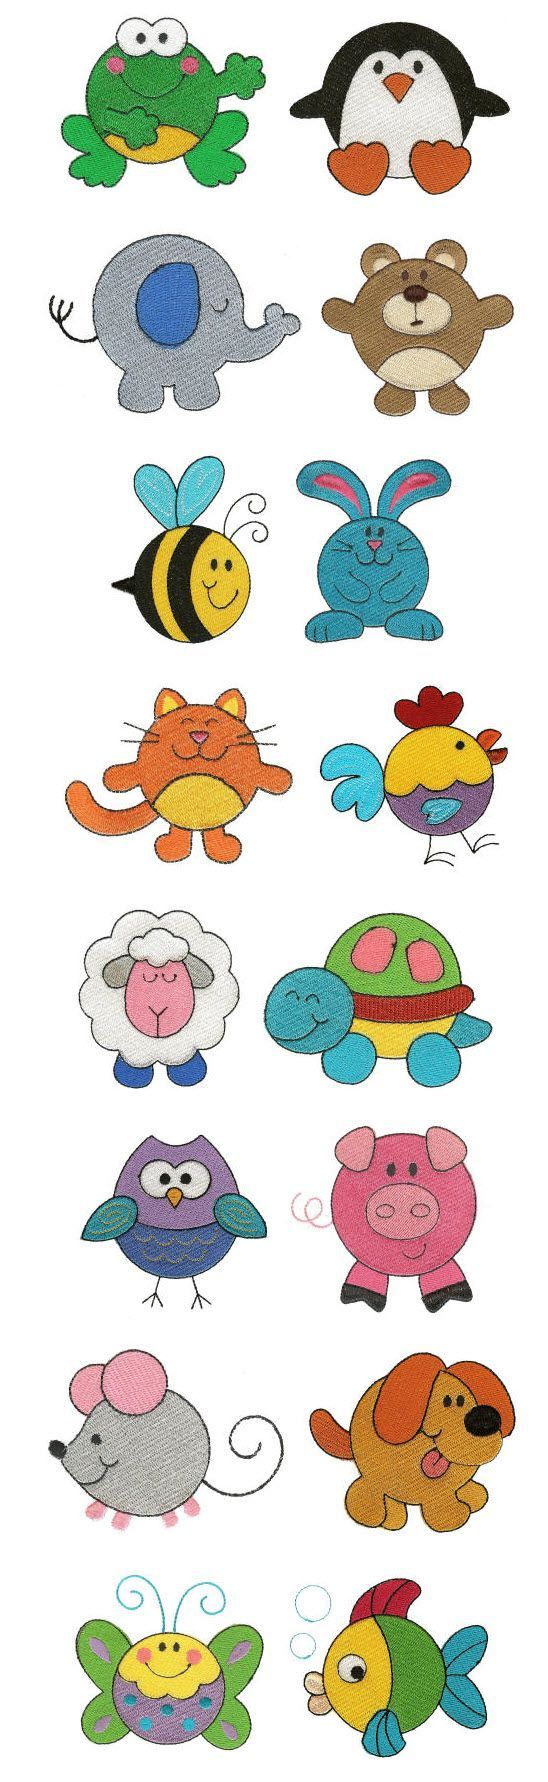 Embroidery Designs | Machine Embroidery Designs | Round Up The Critters Filled: